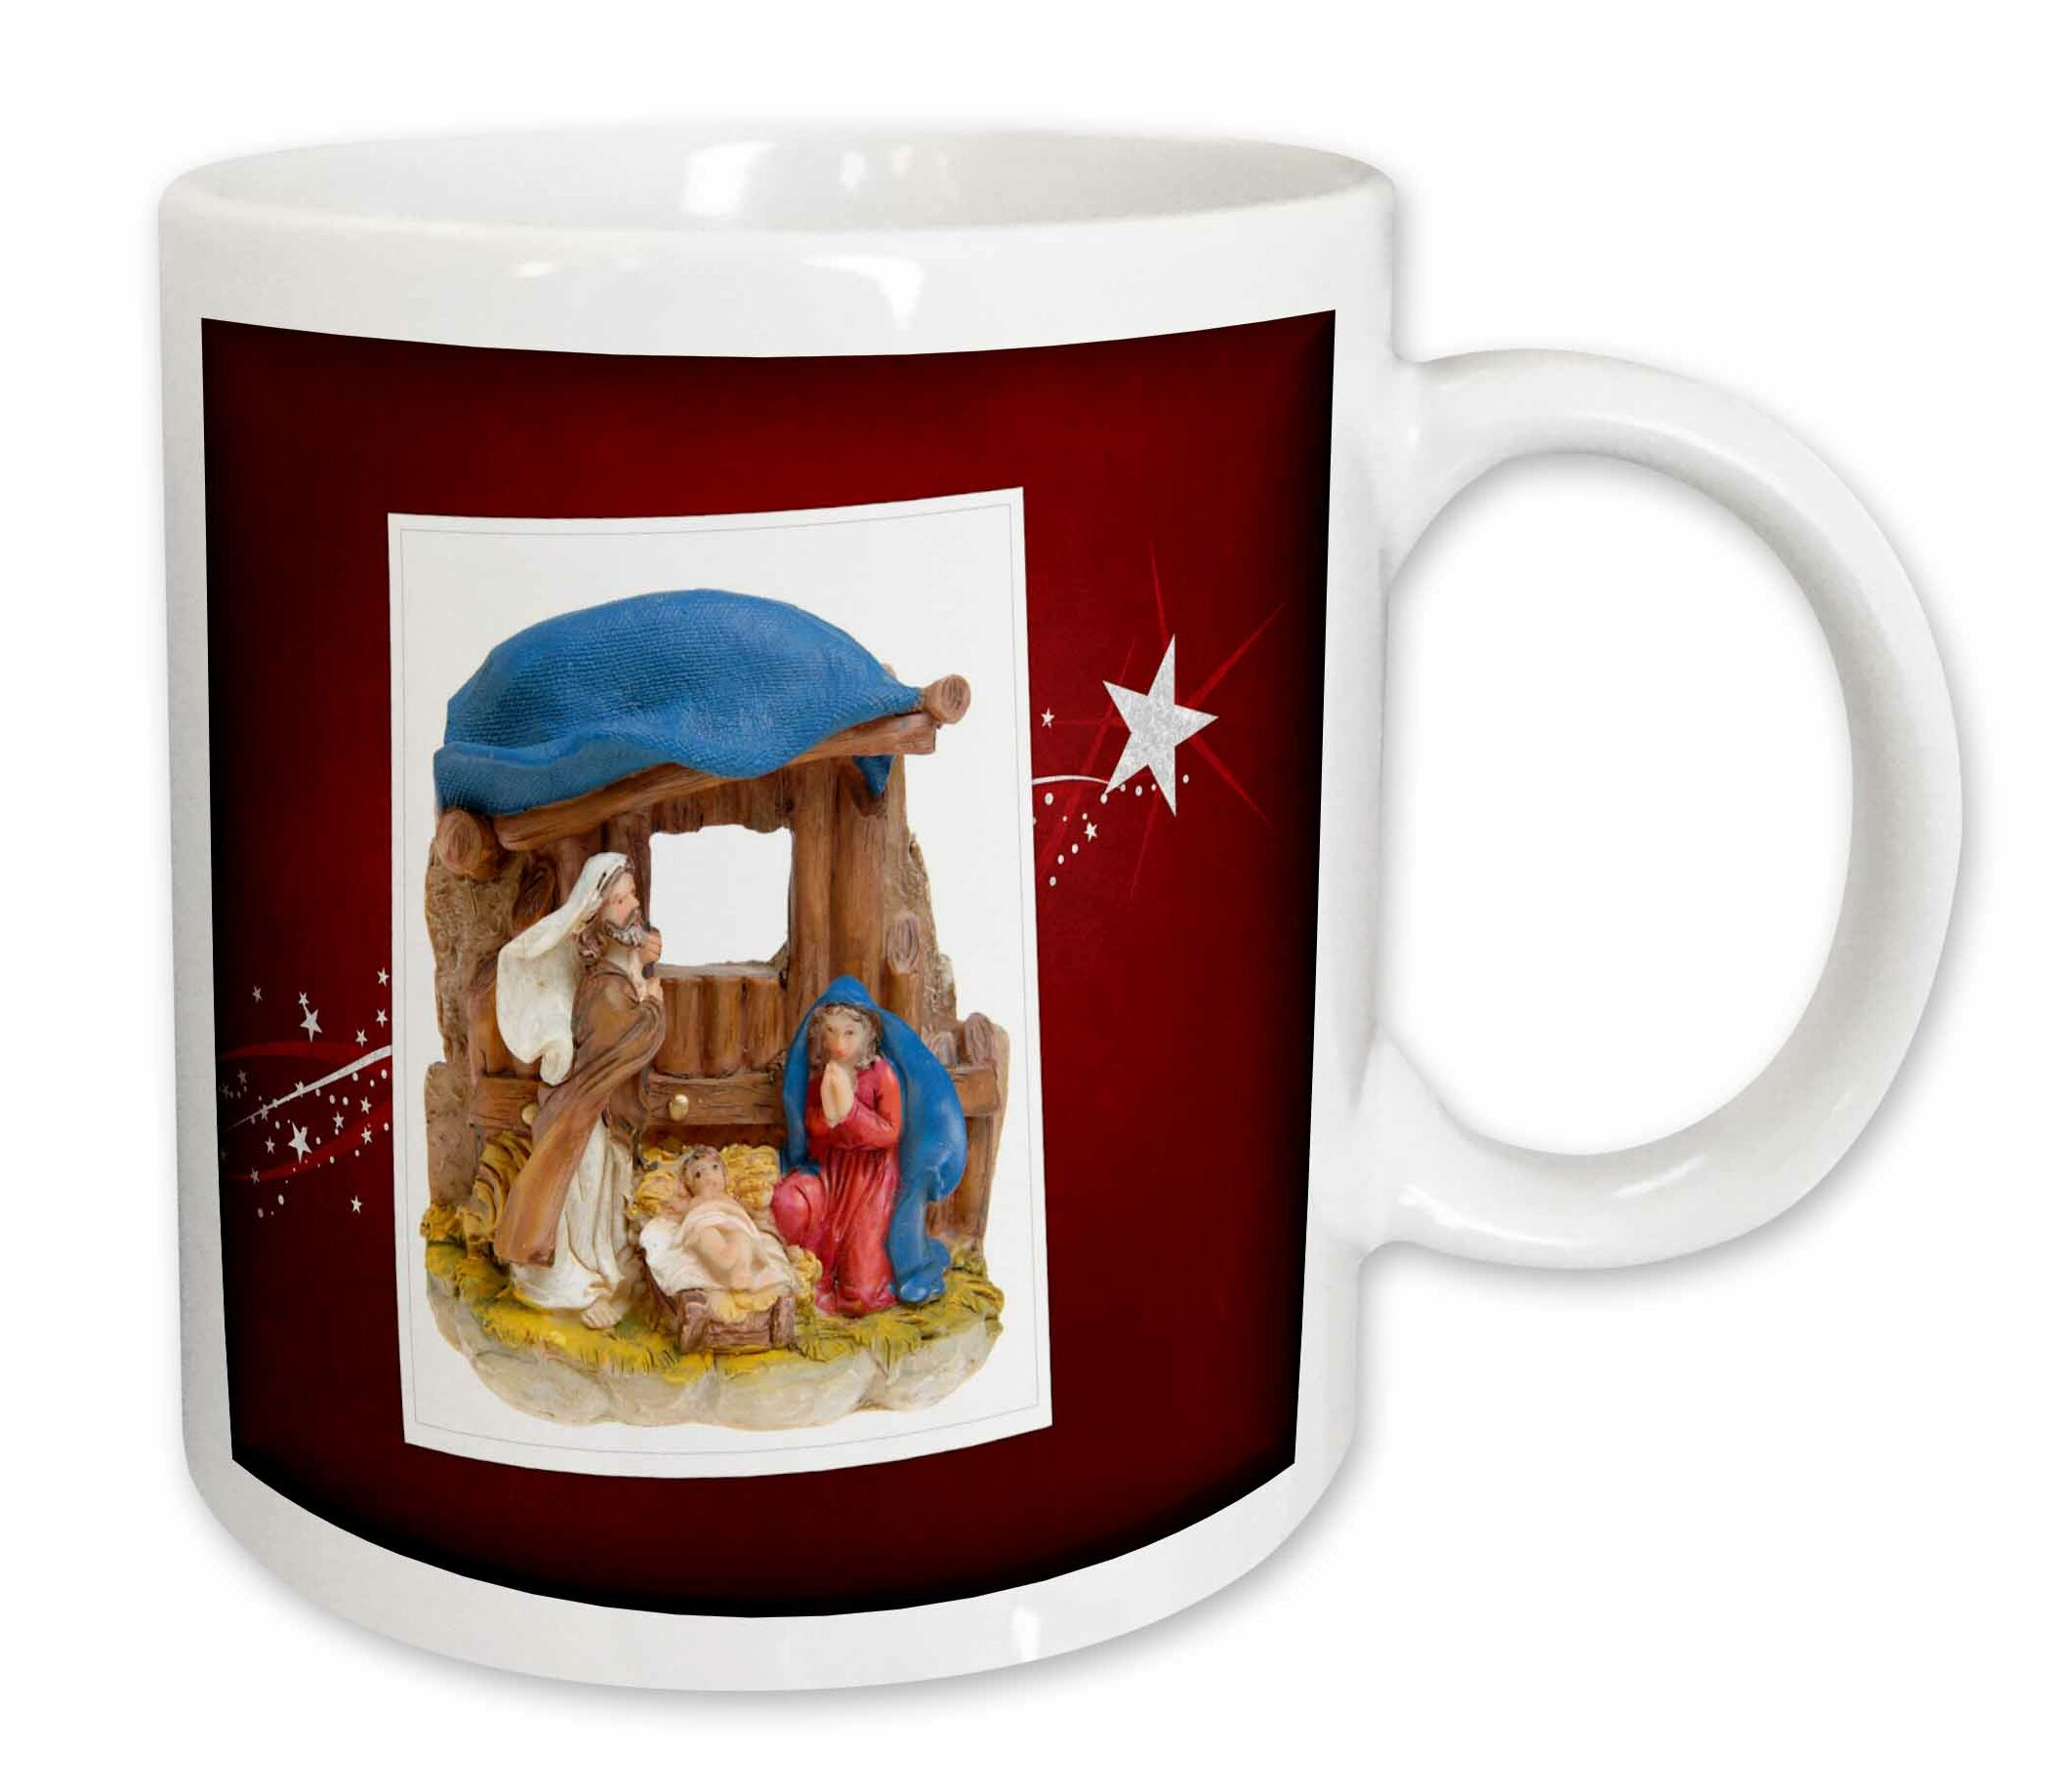 3drose Nativity Scene Coffee Mug Wayfair